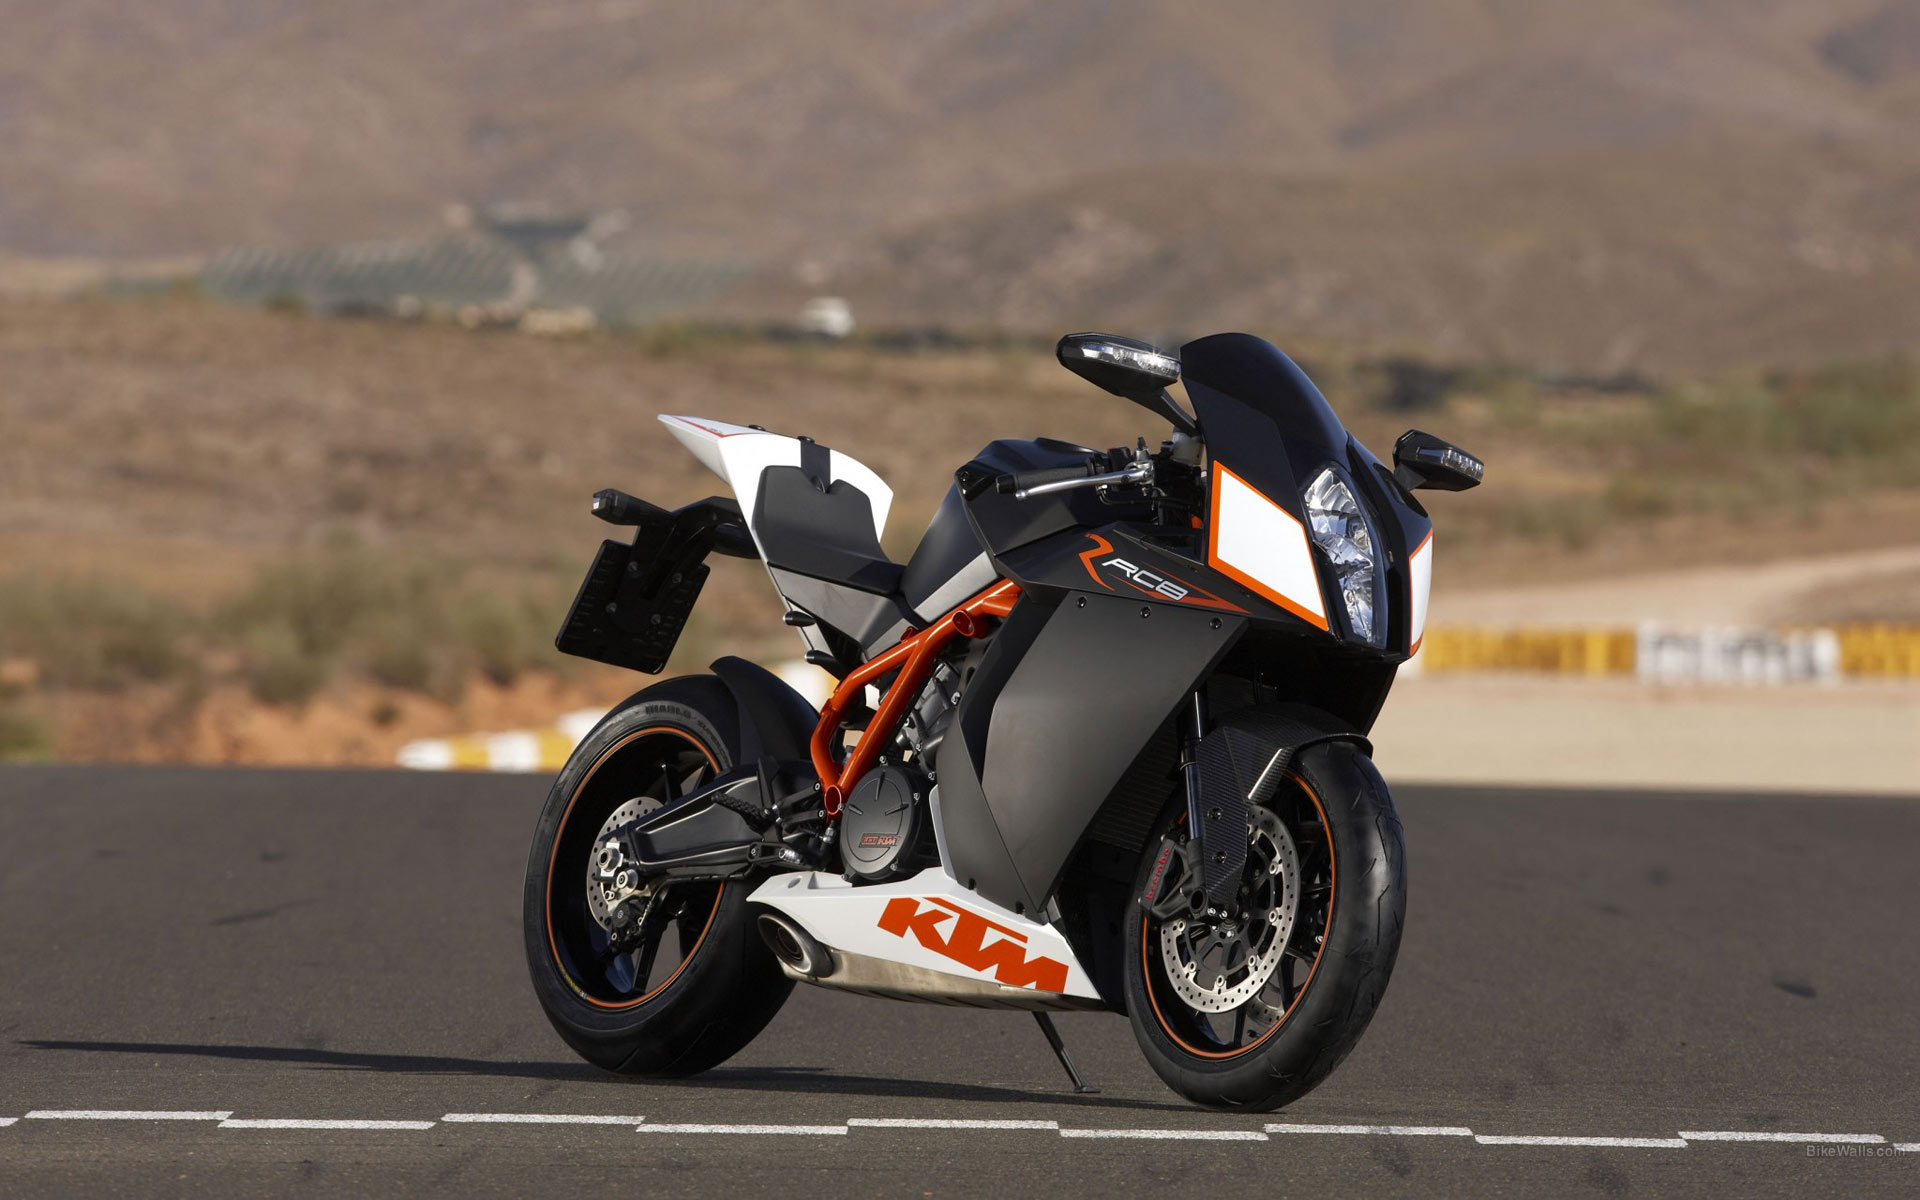 Ktm Rc8 wallpaper 15701 1920x1200